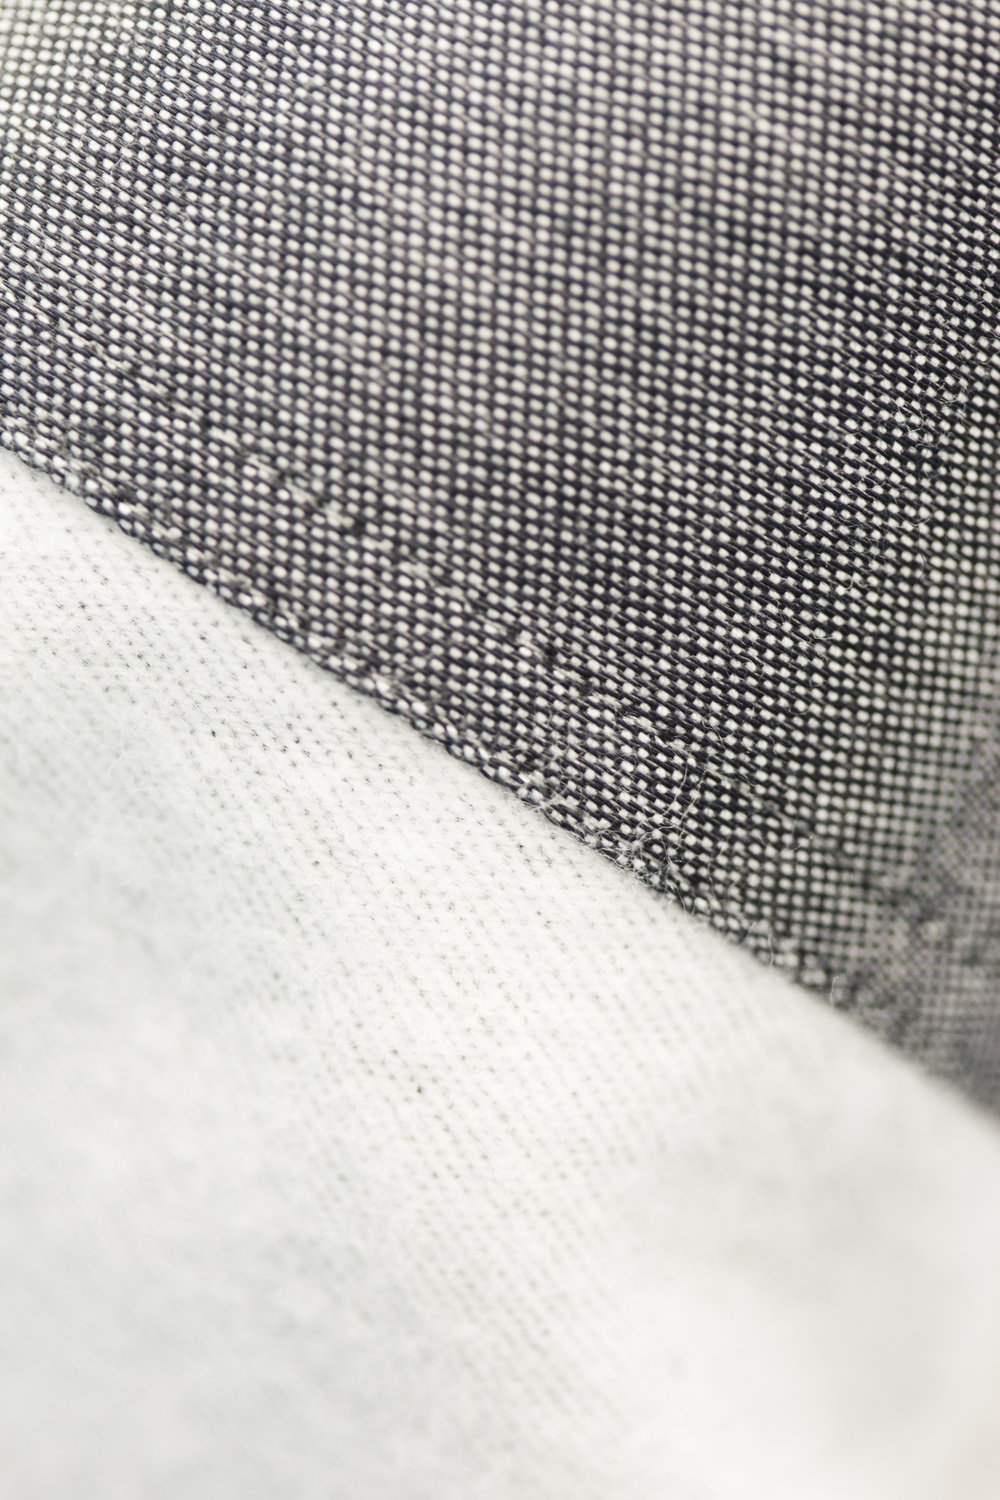 This heavy oxford fabric have undergone an extreme brushing by several stages to achieve this super soft touch and warm feeling. The fabric is made by 2 contrast yarns to give more depth to the look. Used on style Grit Reverse Cuff.